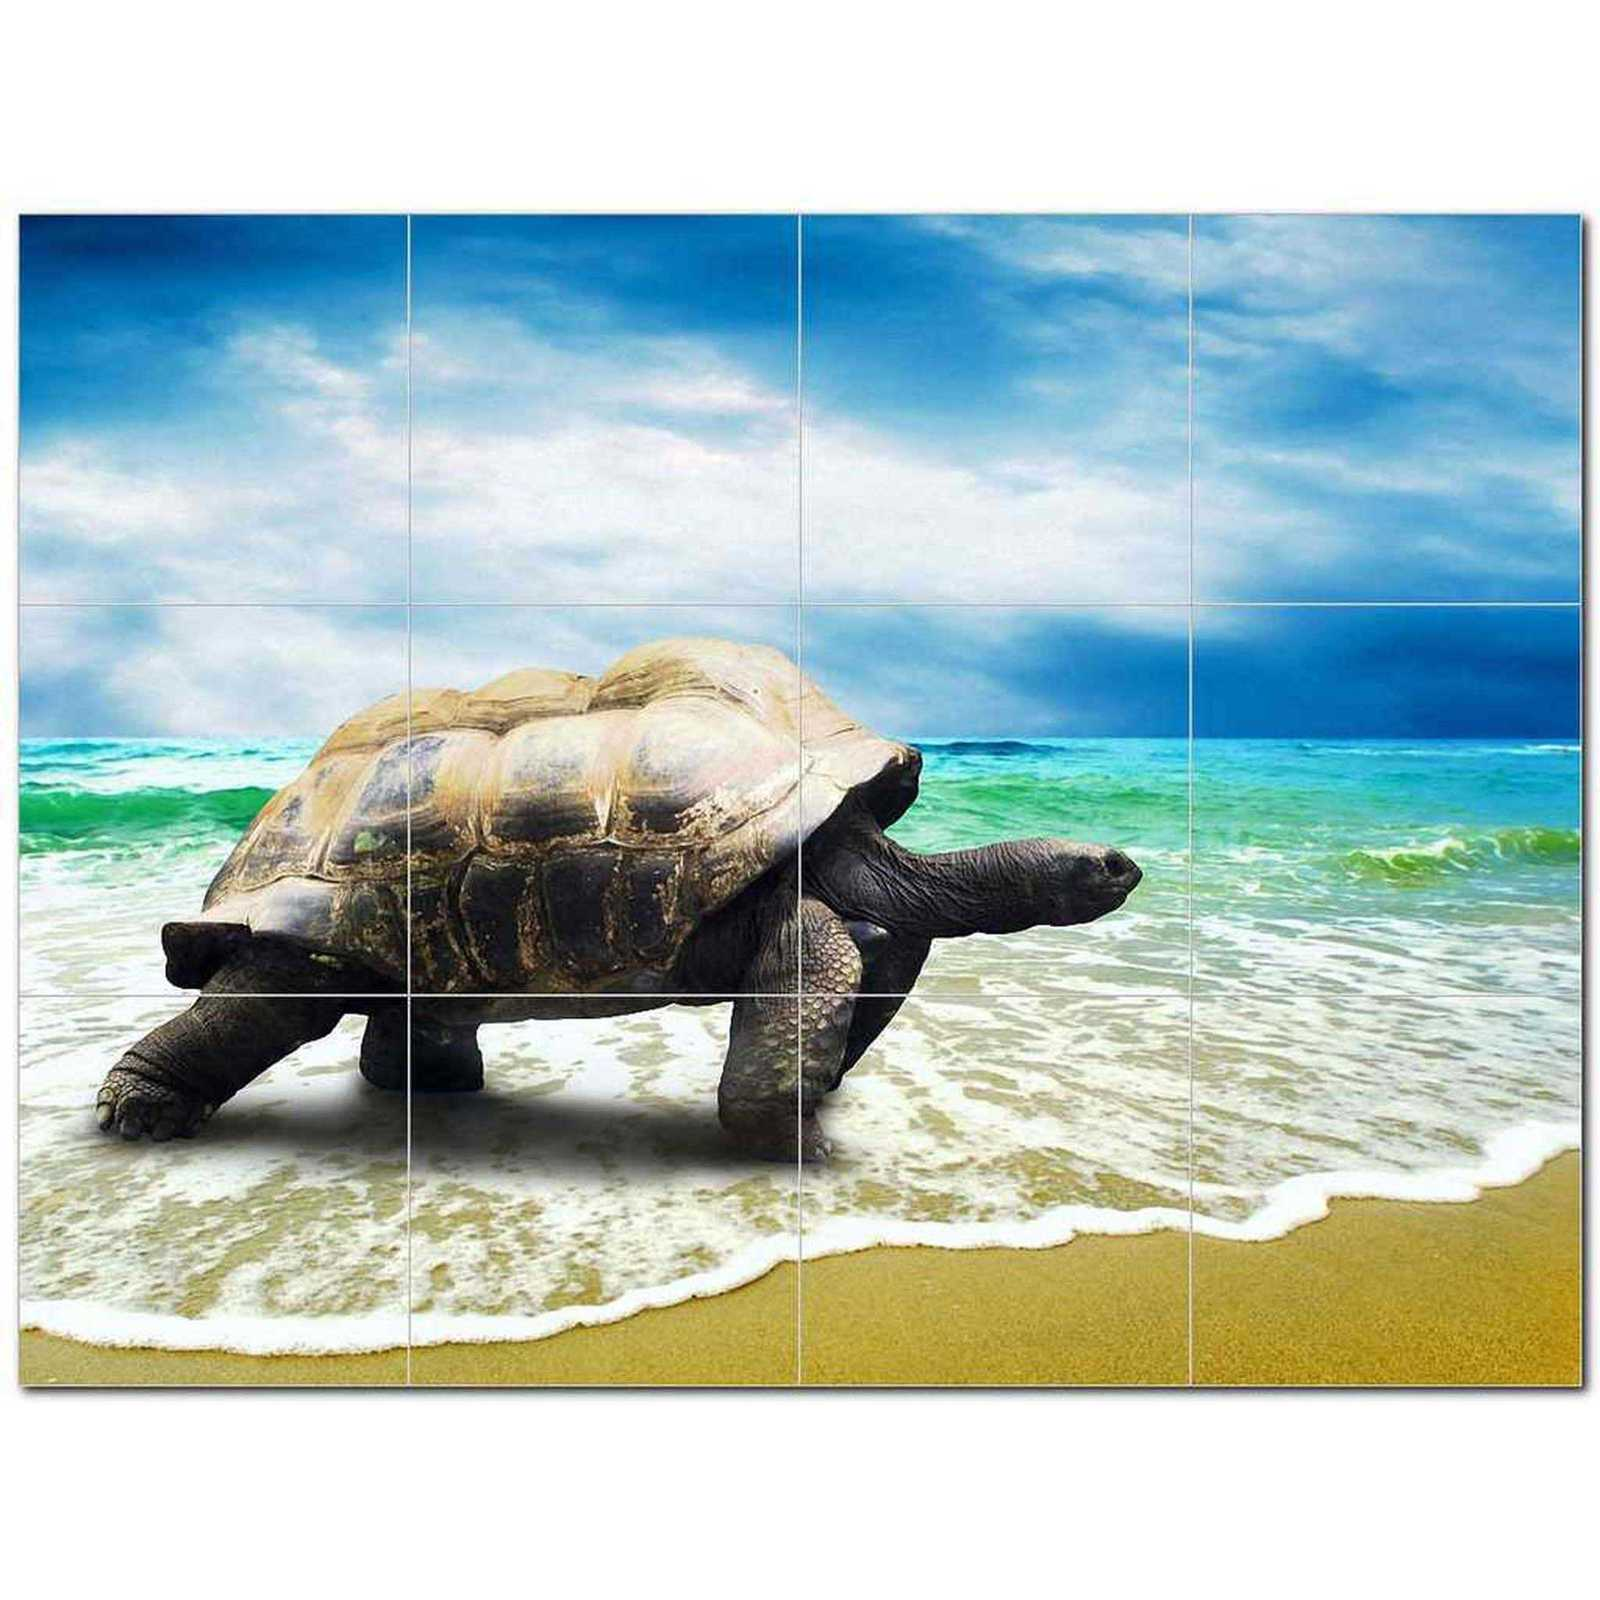 Primary image for Turtle Photo Ceramic Tile Mural Kitchen Backsplash Bathroom Shower BAZ406069